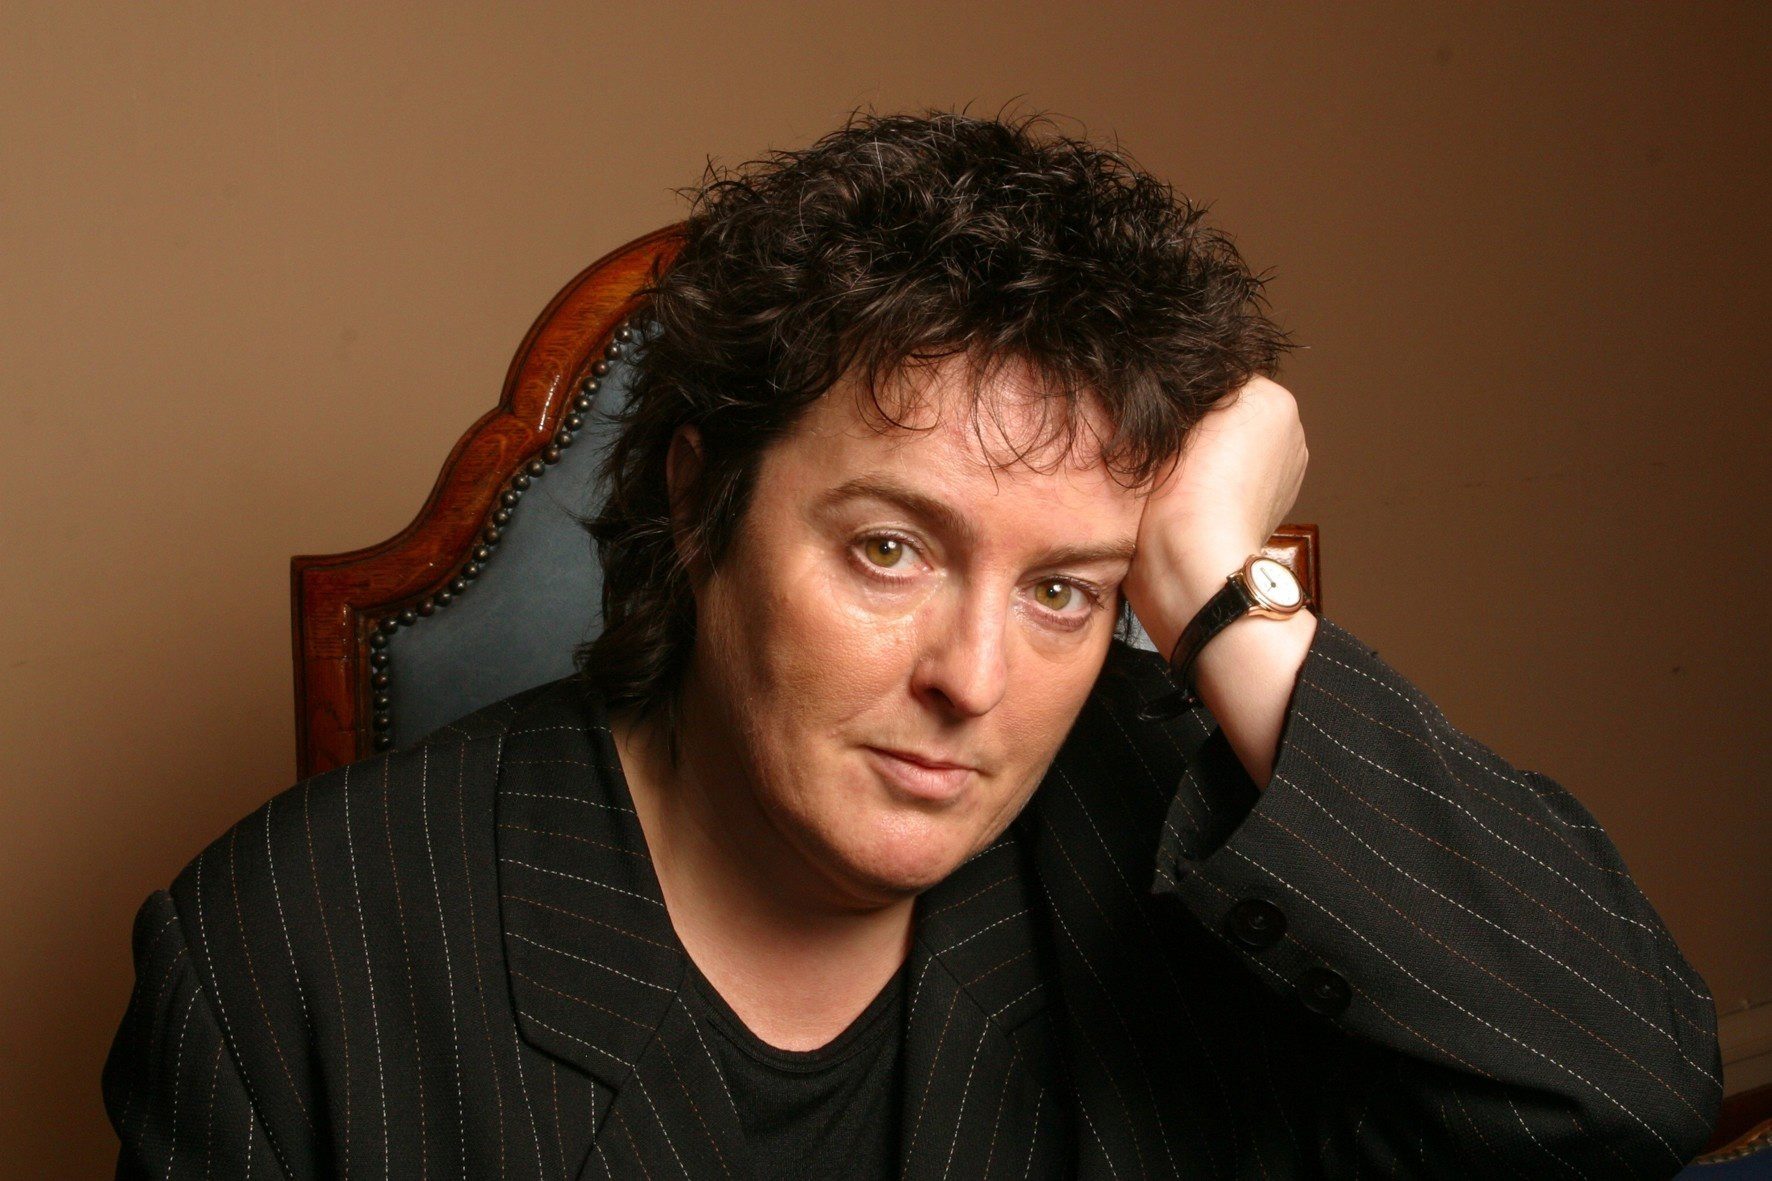 Carol Ann Duffy's April 28 appearance is free and open to the public.